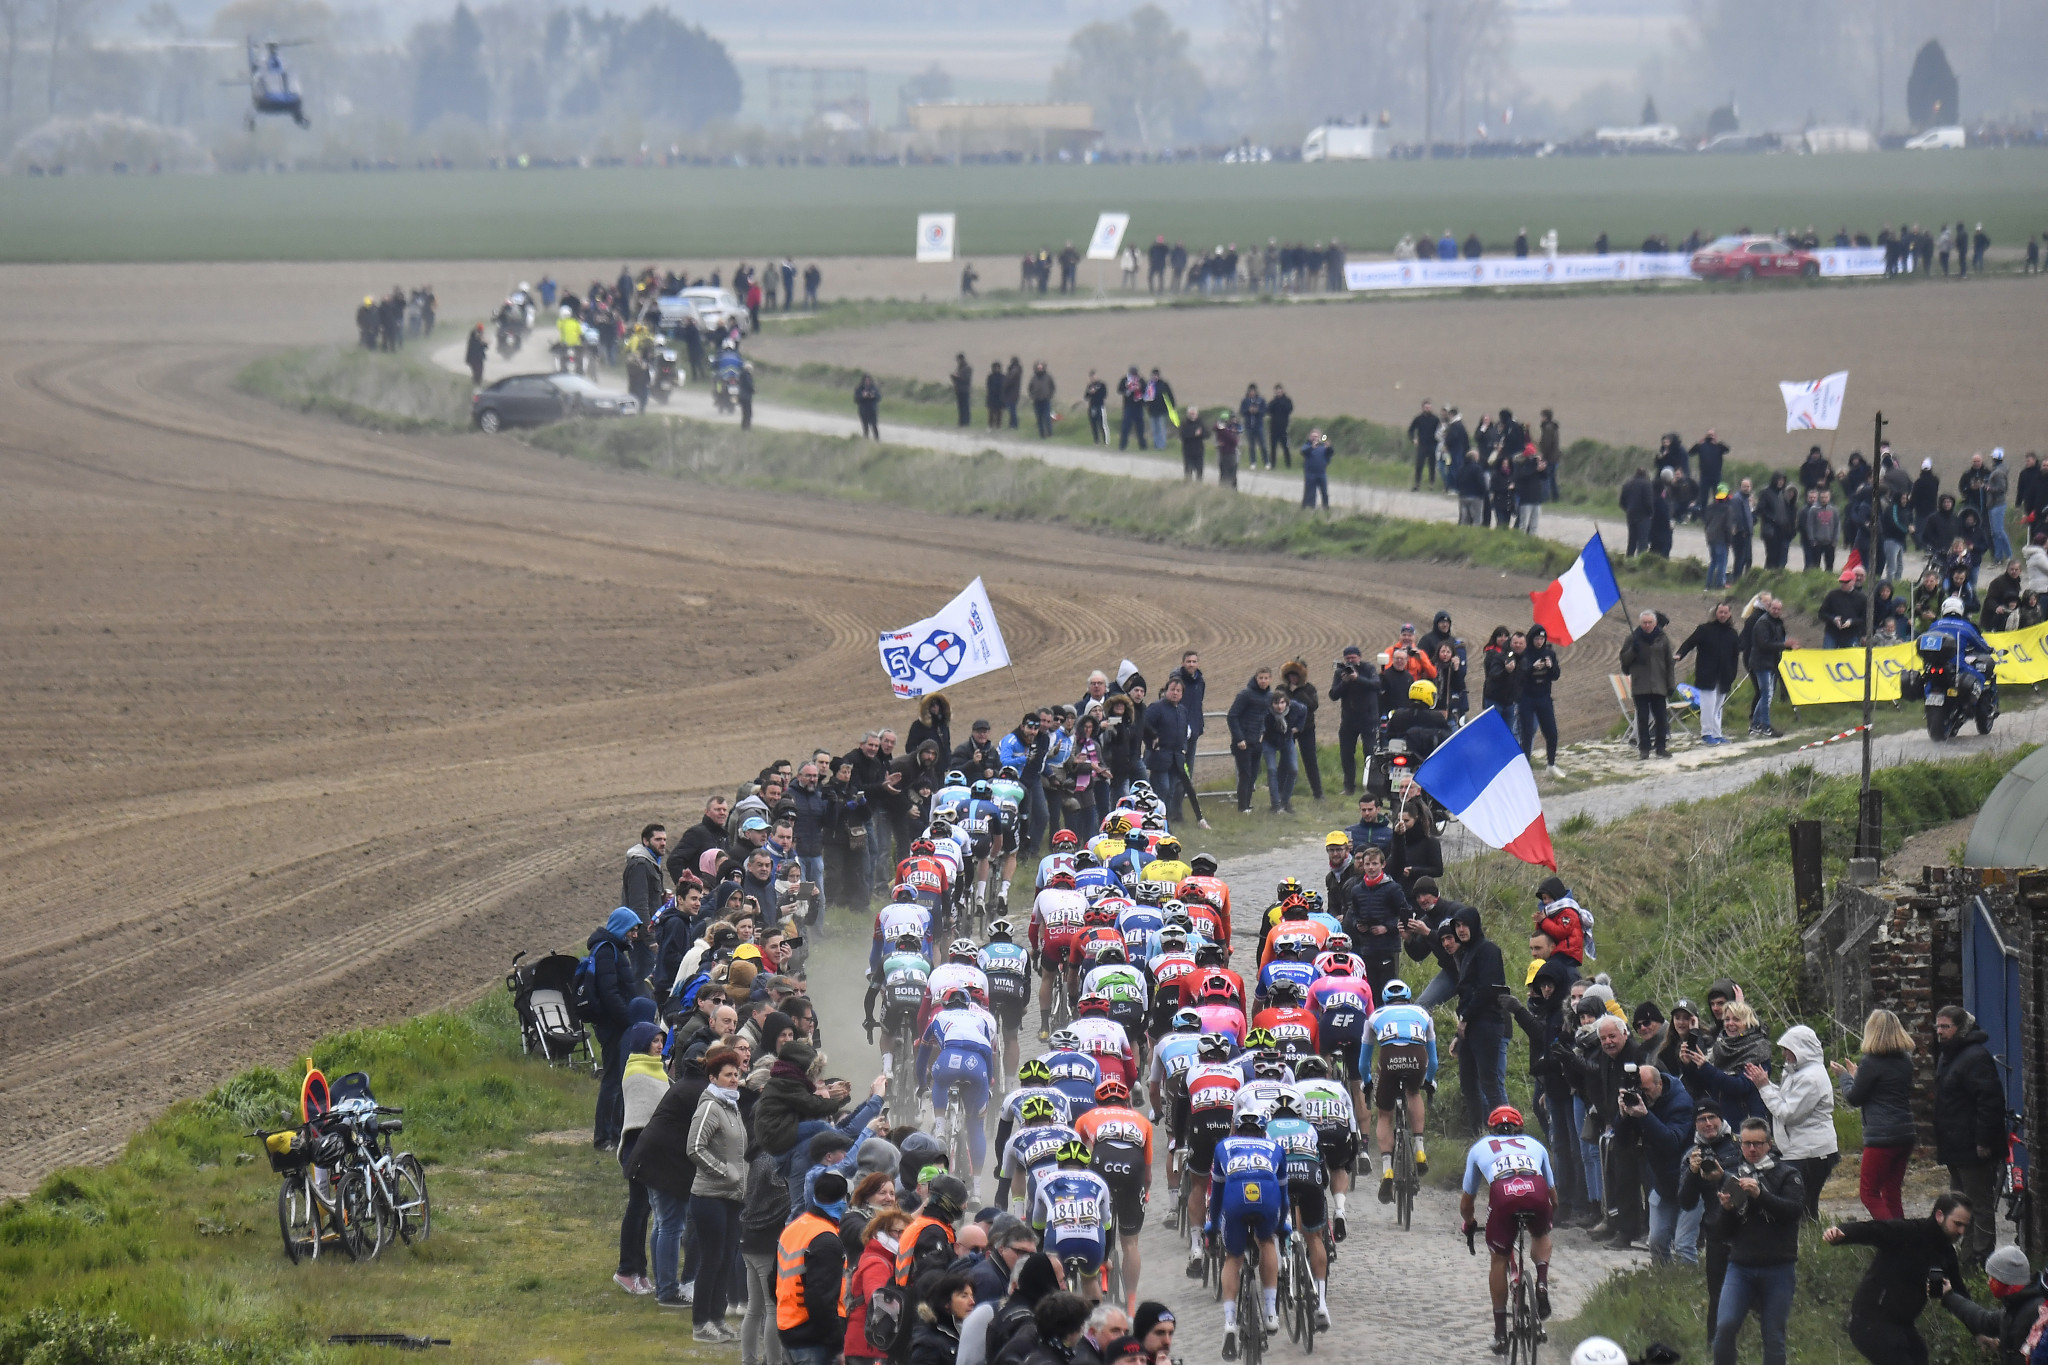 A first women's Paris-Roubaix has been included on the calendar ©Getty Images